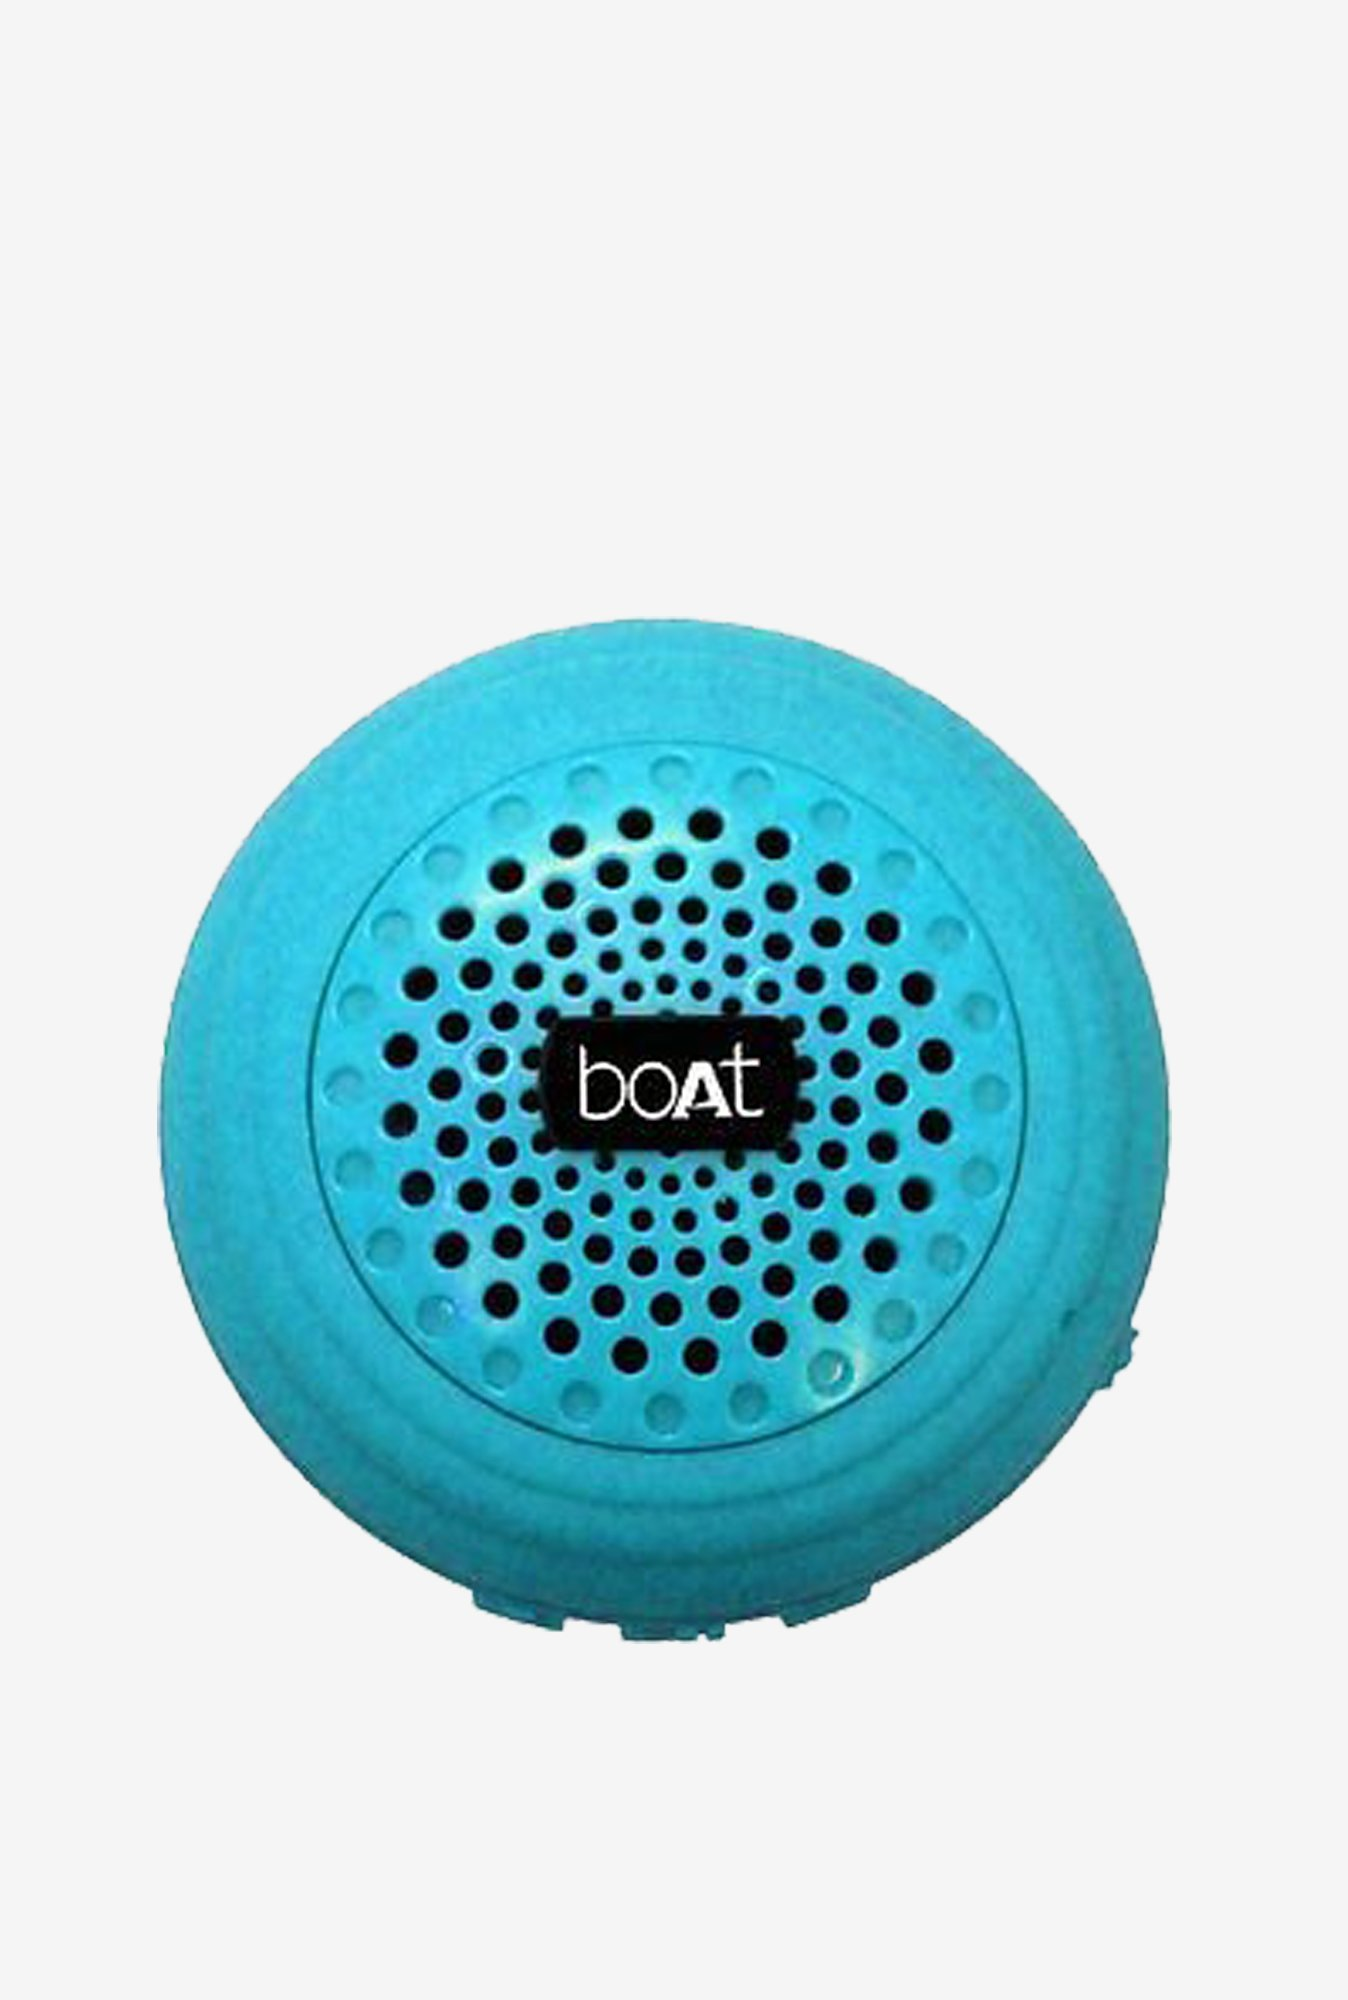 Boat Dynamite BT 100 Portable Bluetooth Speakers (Blue)